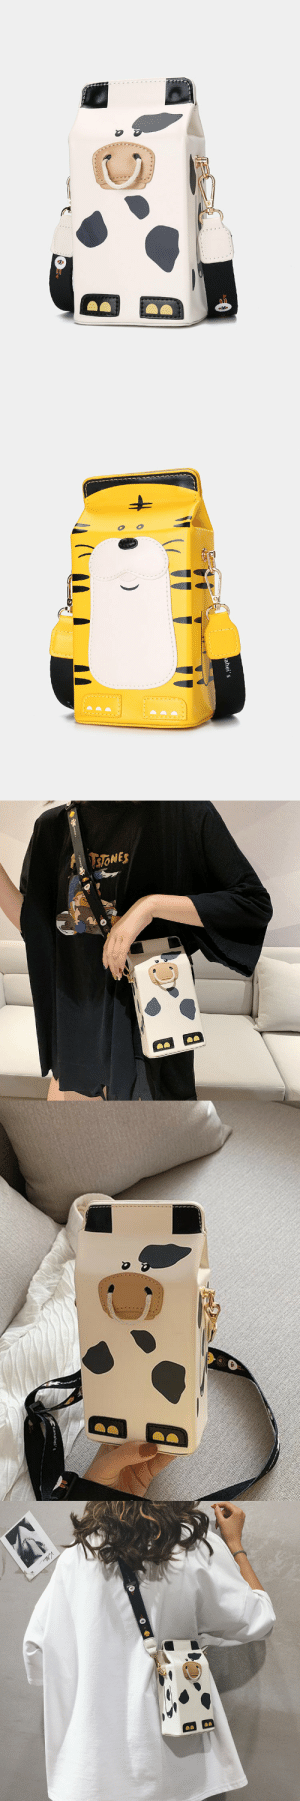 permanentfilemugglethings:  Women PU Leather Cute Cow Tiger Crossbody Bag Casual Phone PurseCheck out HERE: ahei   sONES   Kanahei s   Vaklare permanentfilemugglethings:  Women PU Leather Cute Cow Tiger Crossbody Bag Casual Phone PurseCheck out HERE